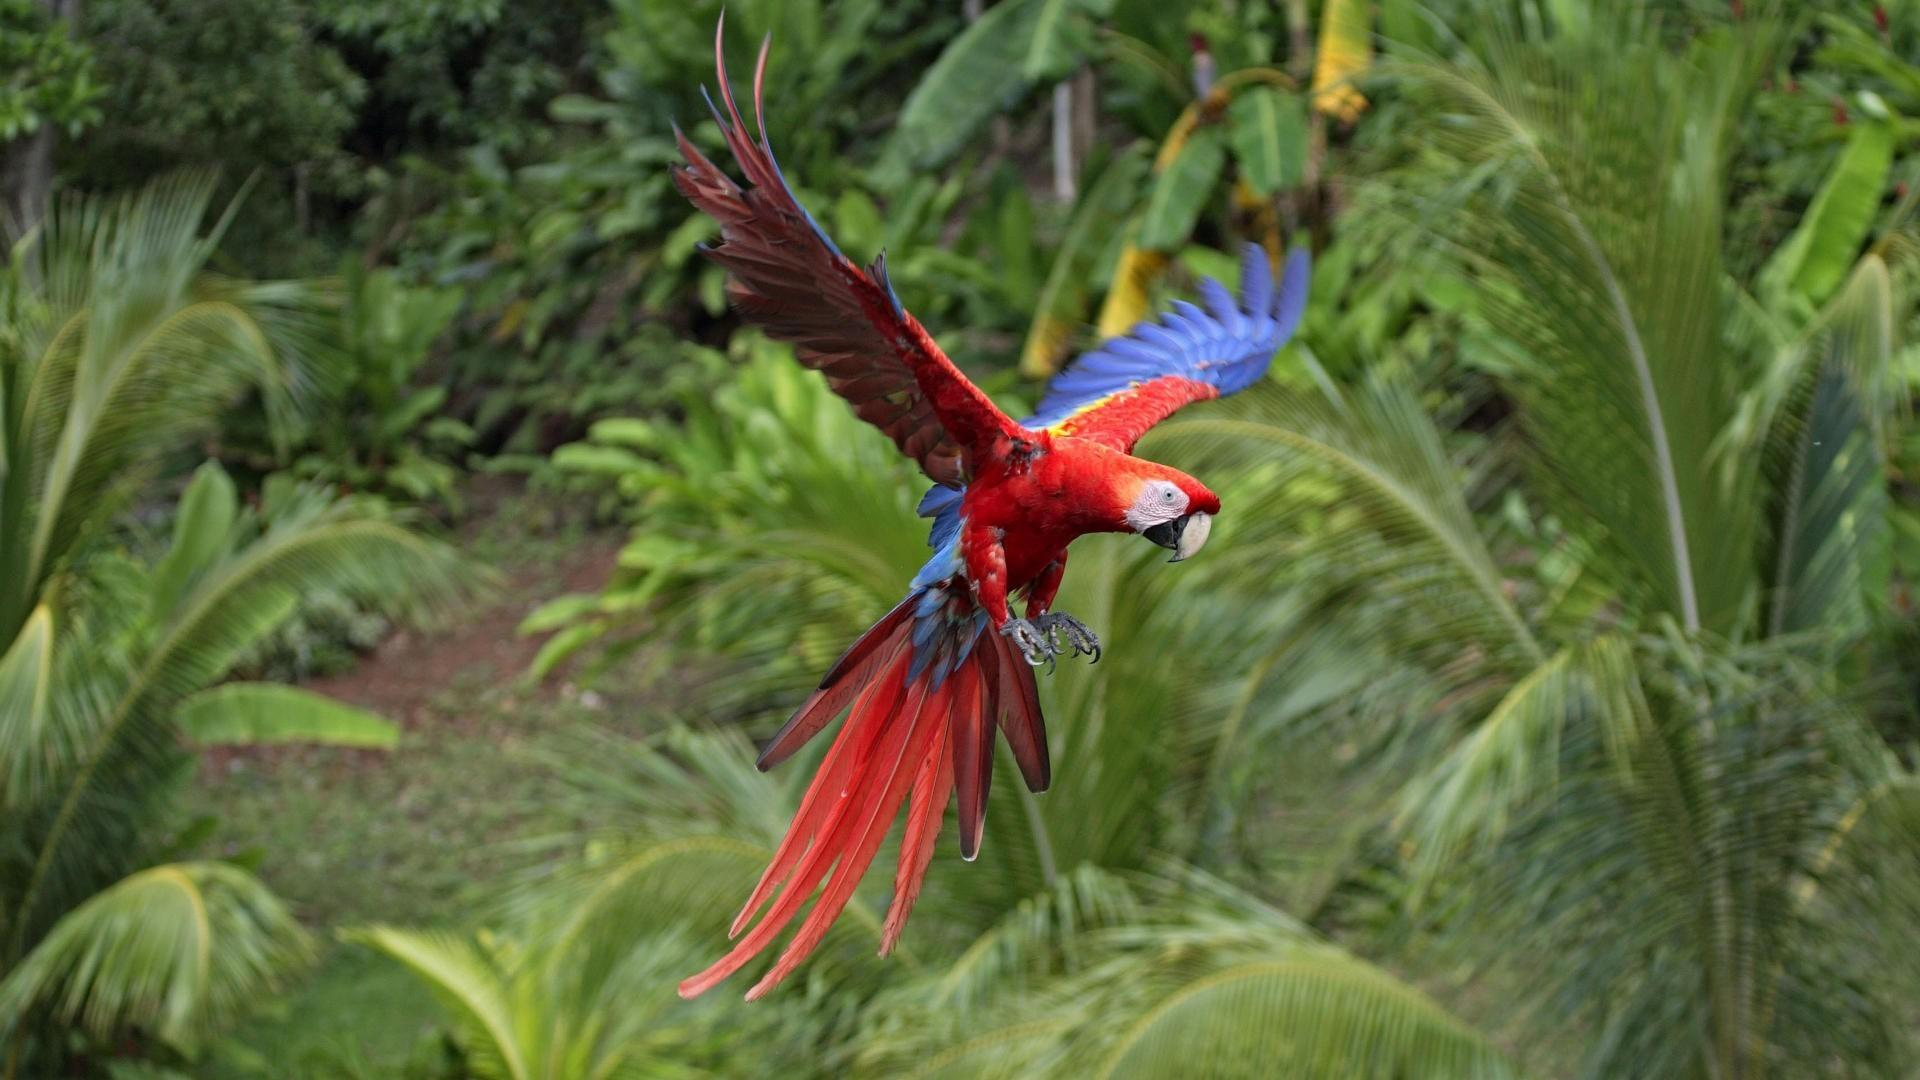 Macaw scarlet macaws birds flight parrots wallpapers